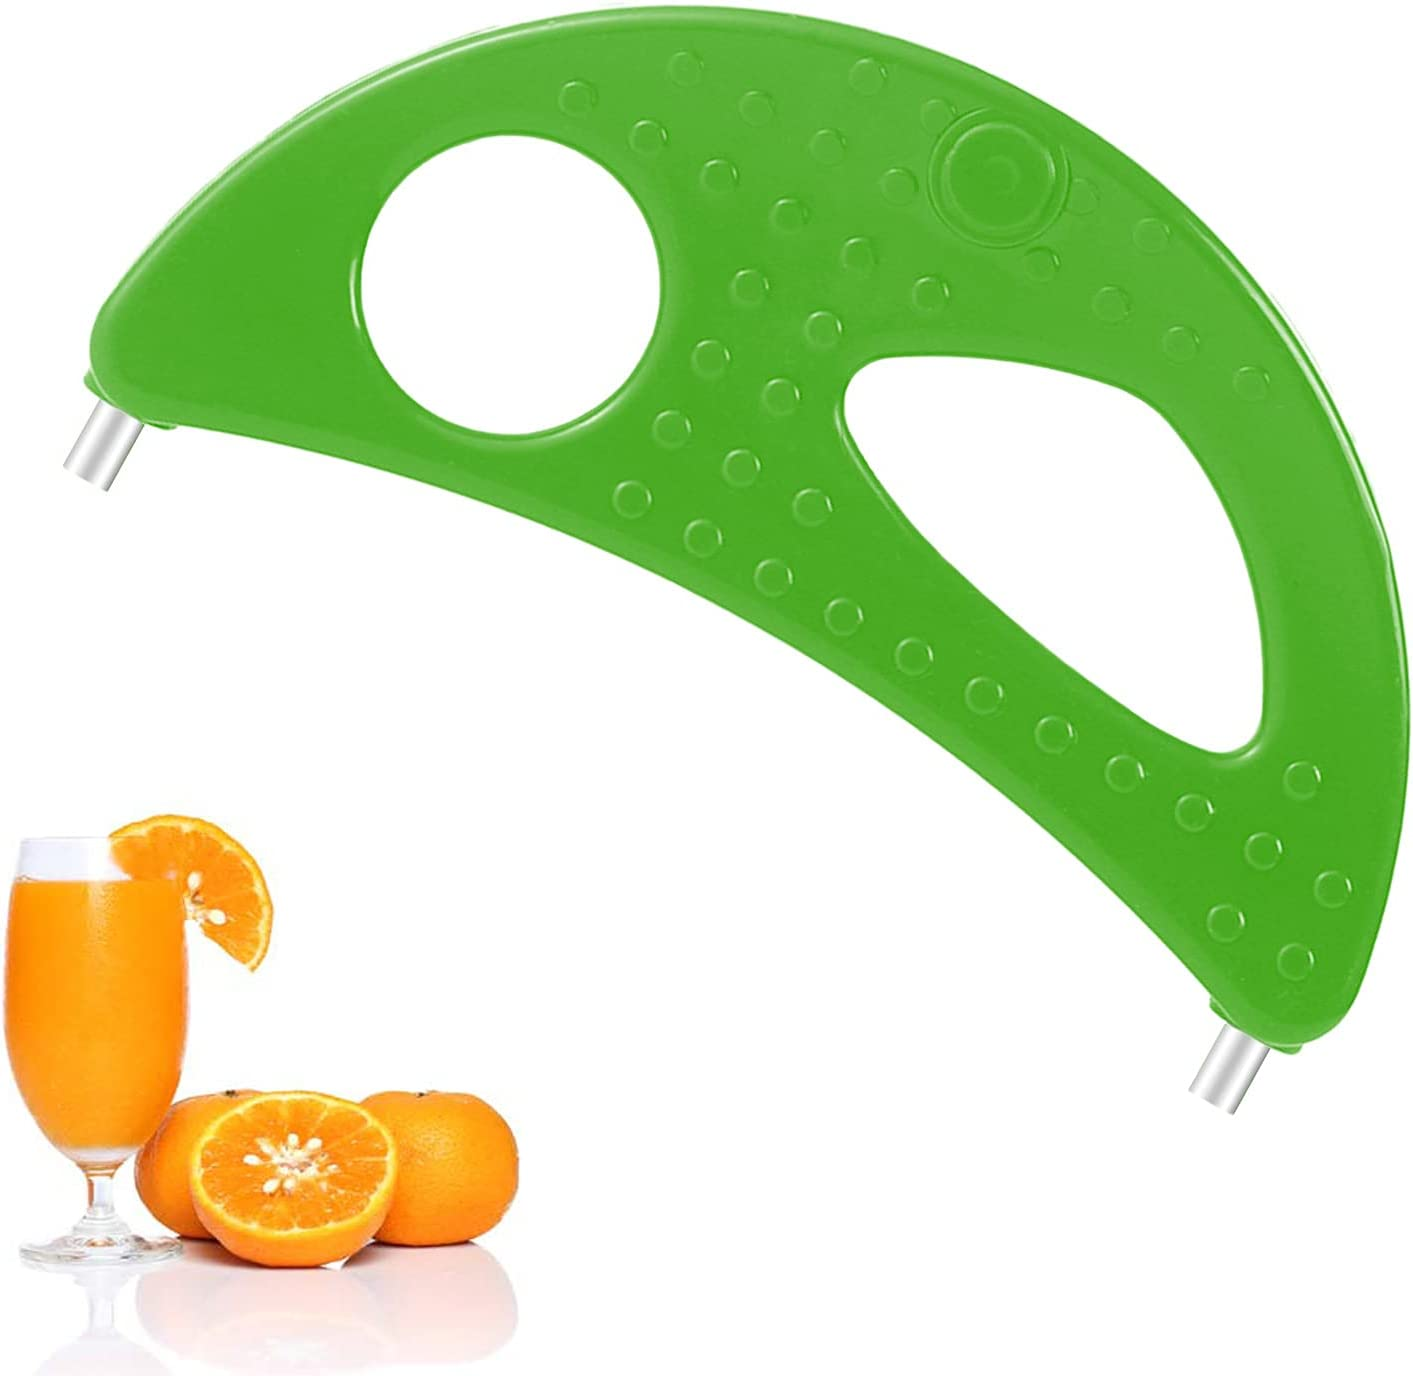 Crescent Tool Compatible with Jack Lalanne Power Juicer CL003AP E1188 E1189 MT1000 Juicer Replacement Parts (Green)